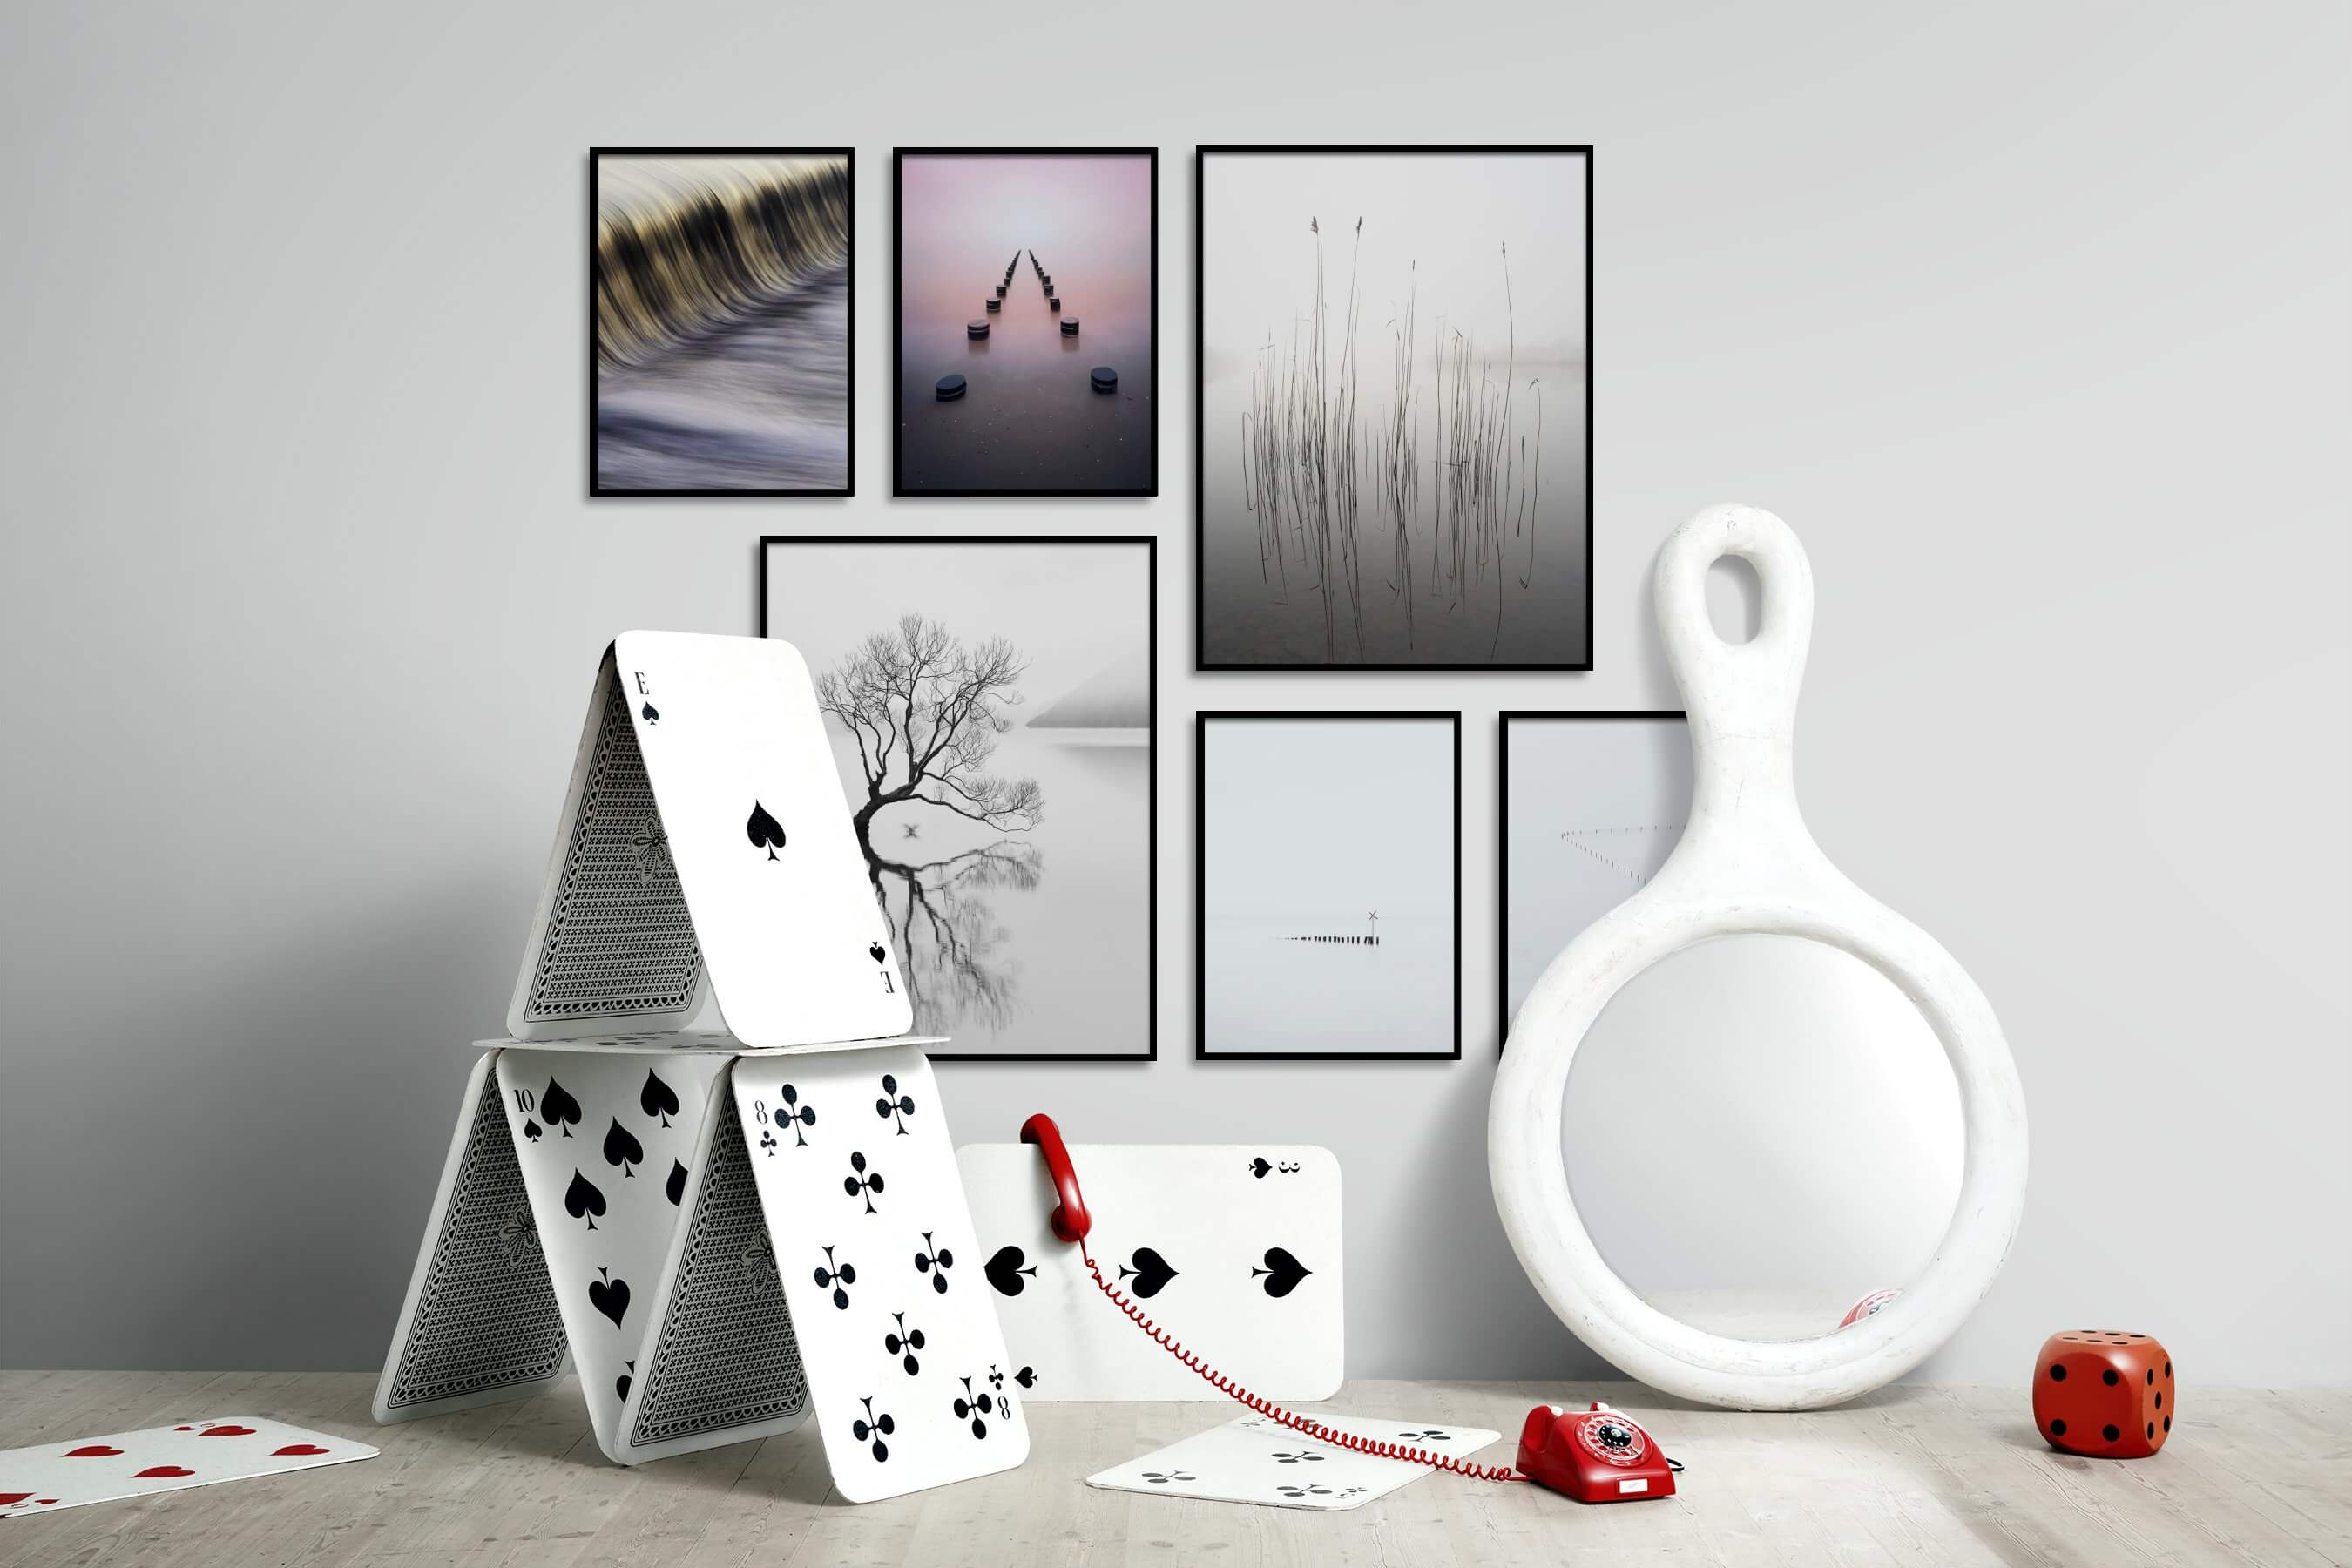 Gallery wall idea with six framed pictures arranged on a wall depicting For the Moderate, Beach & Water, For the Minimalist, Mindfulness, Black & White, Nature, and Flowers & Plants